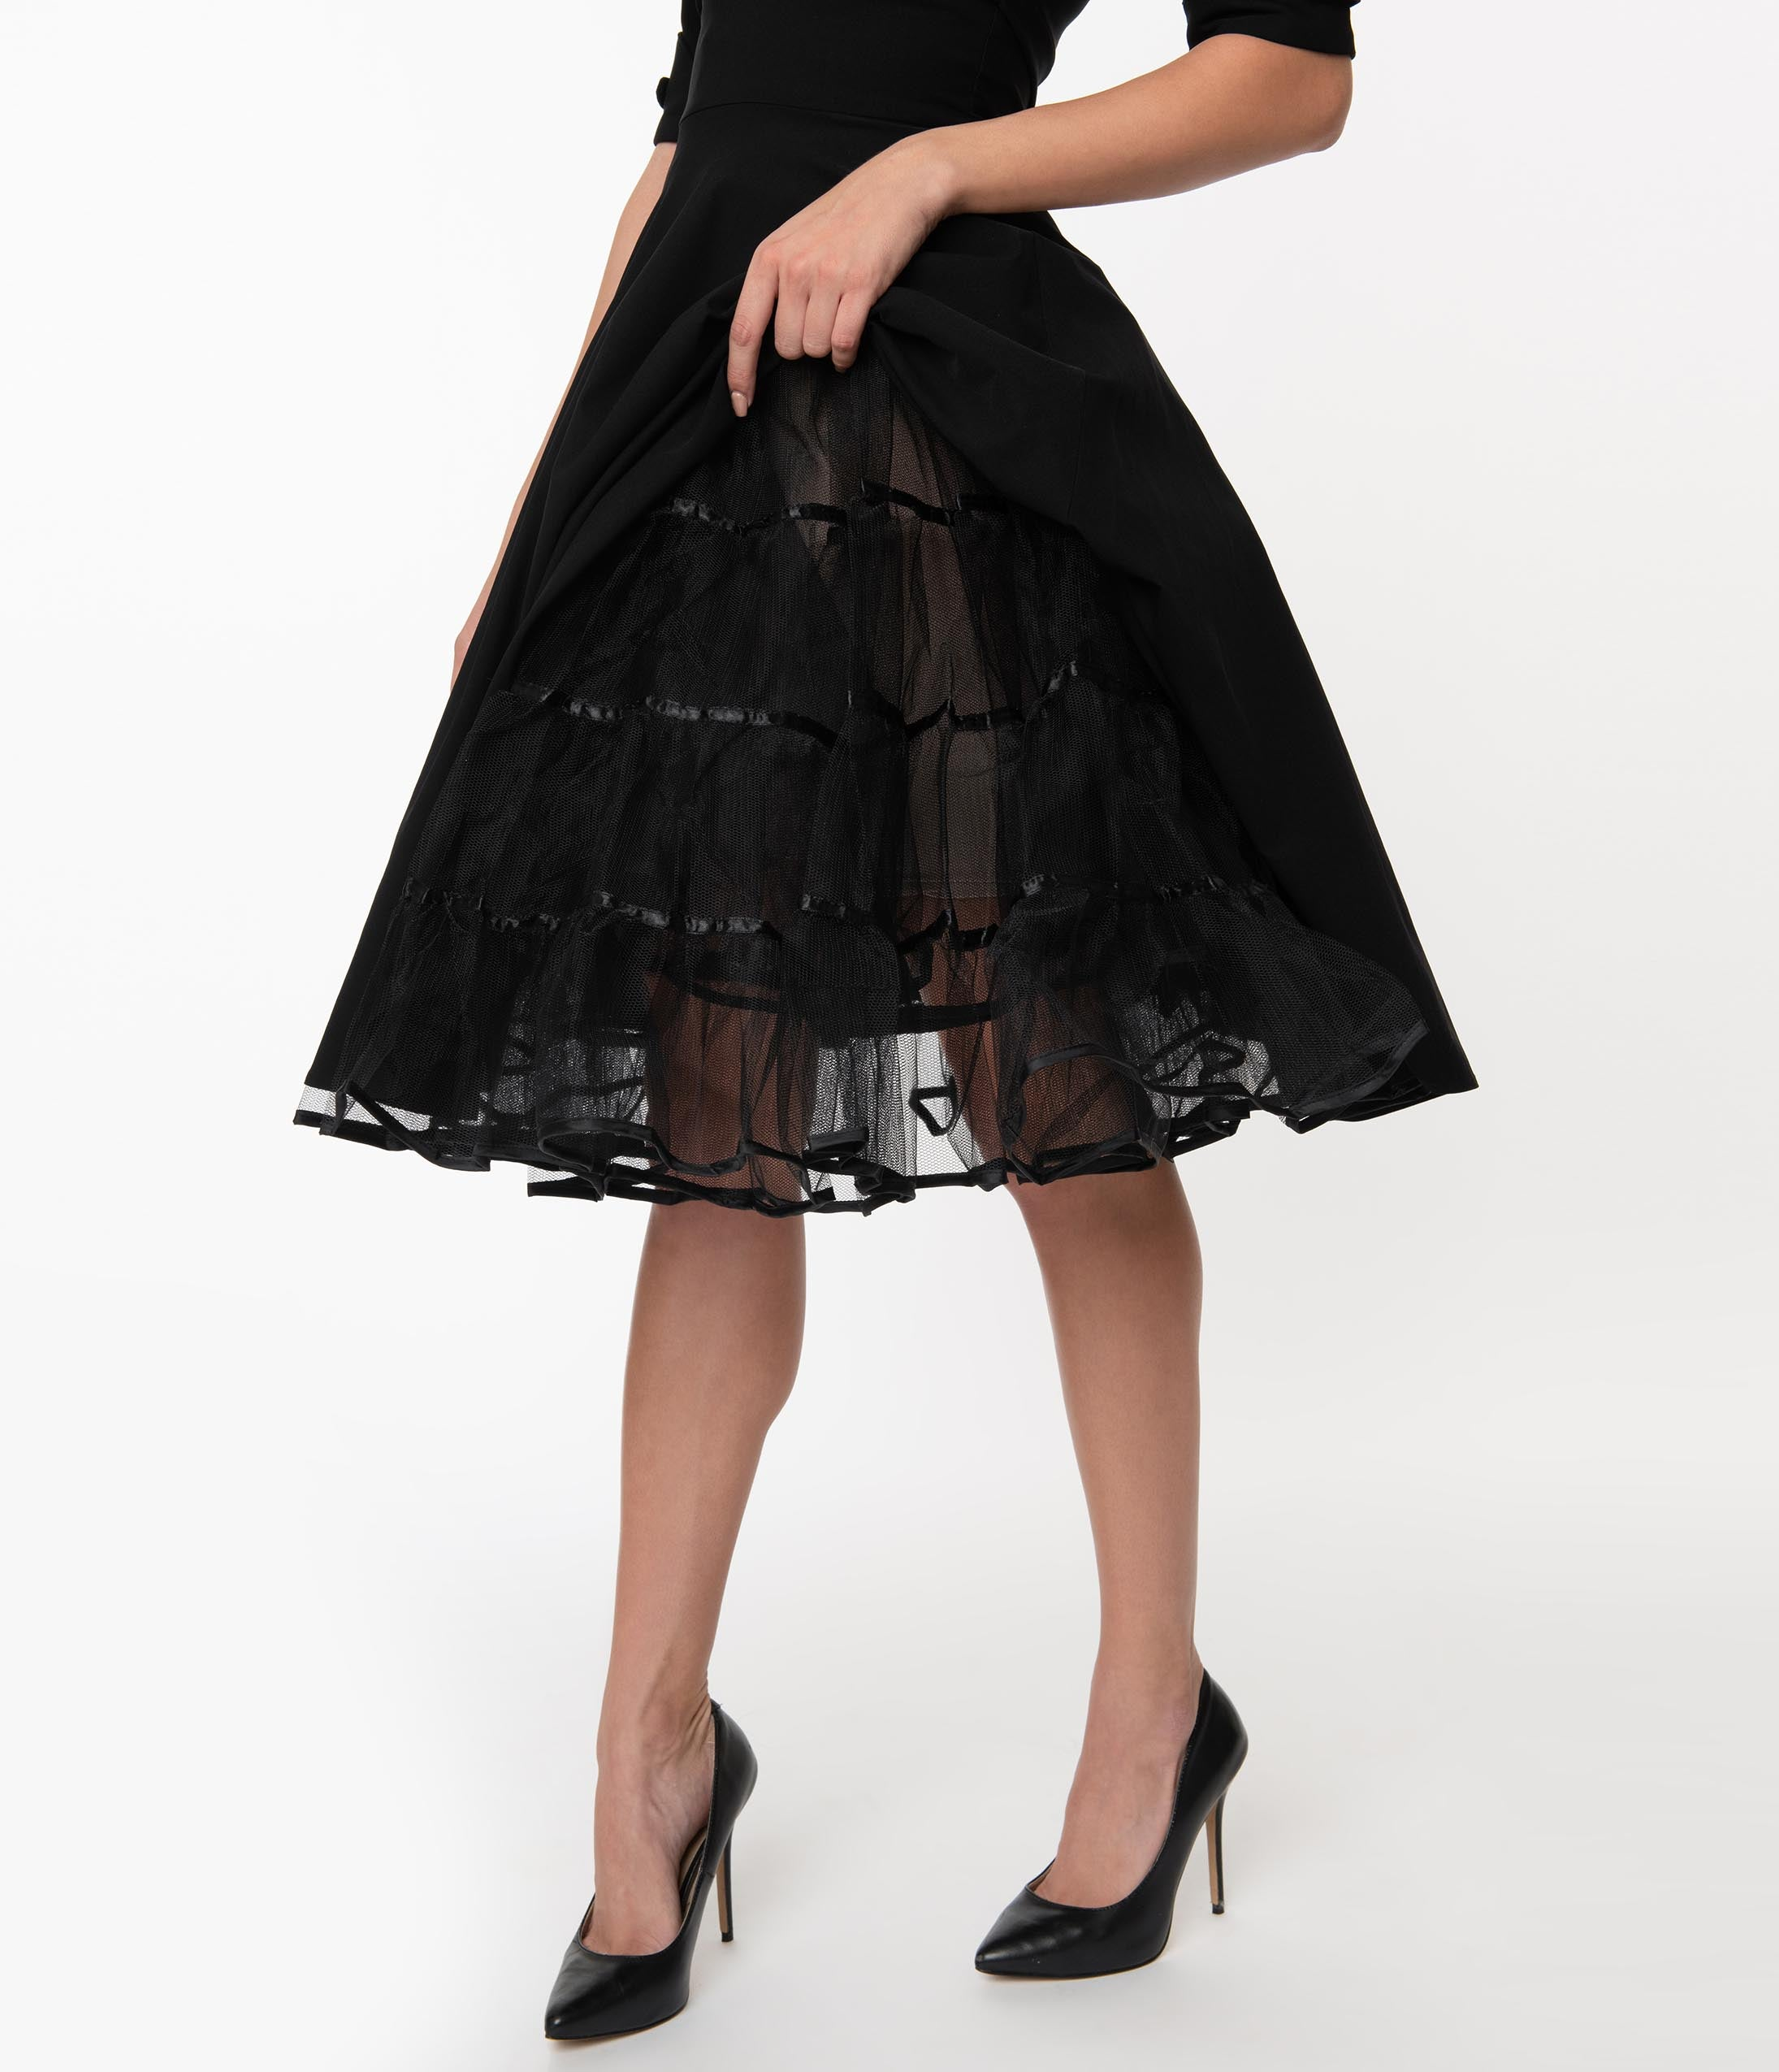 What Did Women Wear in the 1950s? 1950s Fashion Guide 1950S Style Black Tulle Petticoat Crinoline $58.00 AT vintagedancer.com